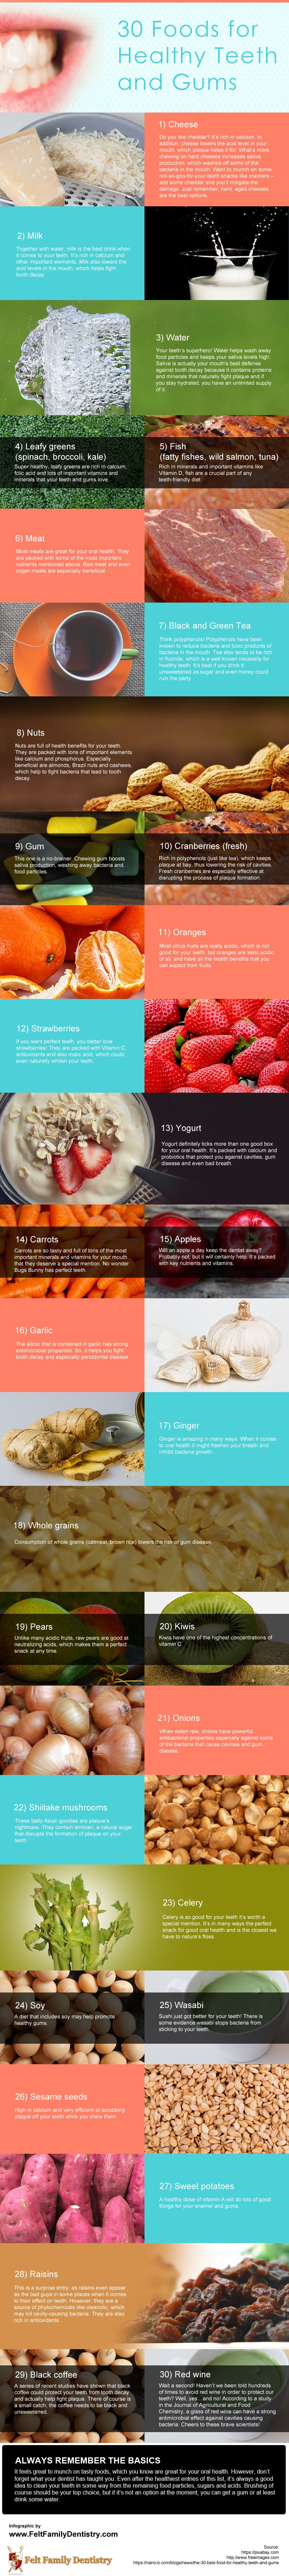 30-foods-for-healthy-teeth-and-gums-min